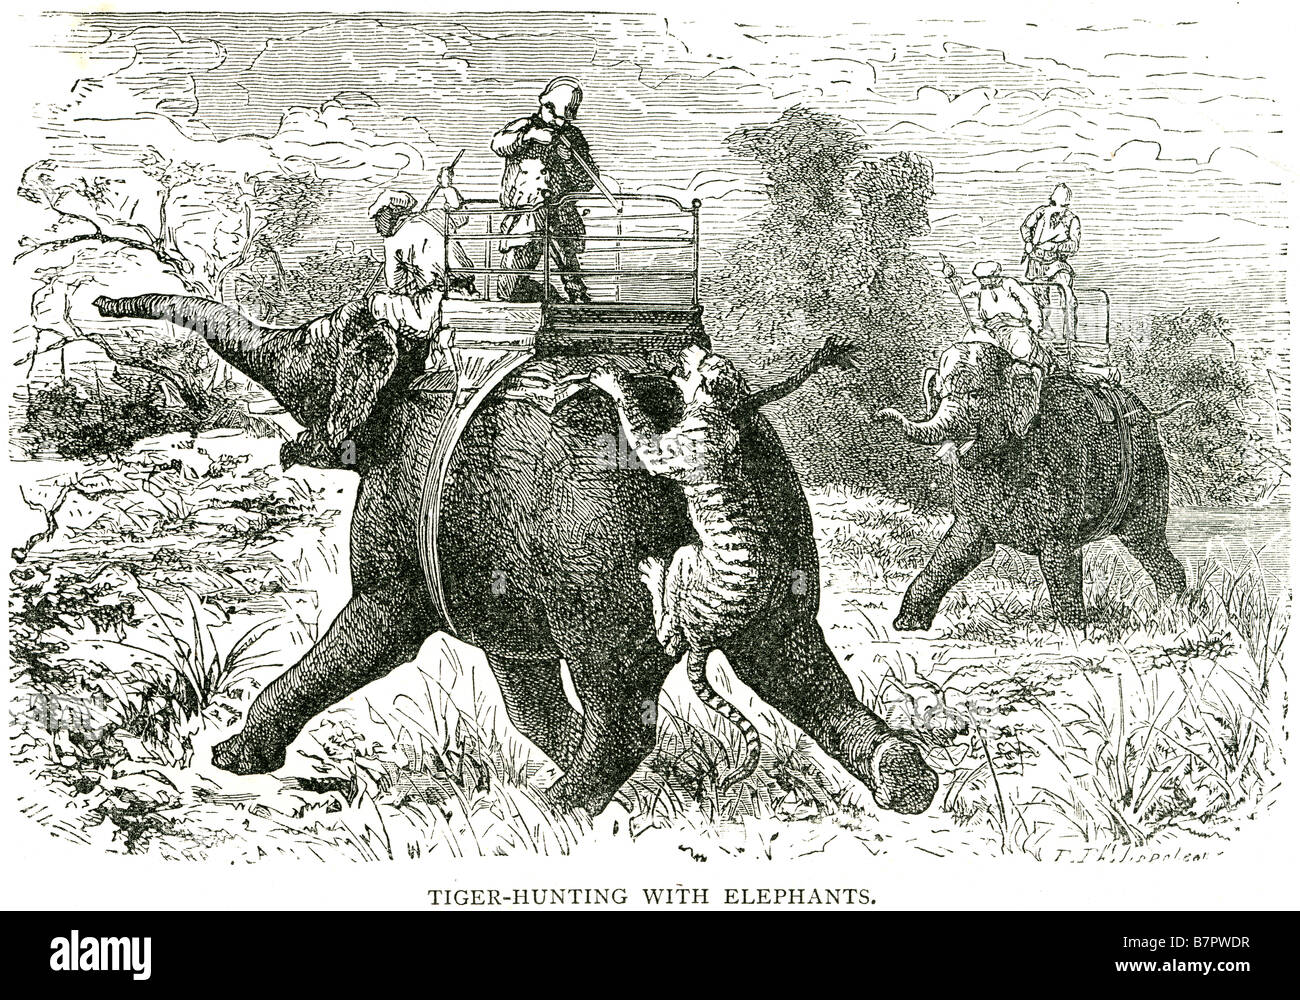 tiger hunting elephants Humans are the tiger's most significant predator, as tigers are often poached illegally Stock Photo